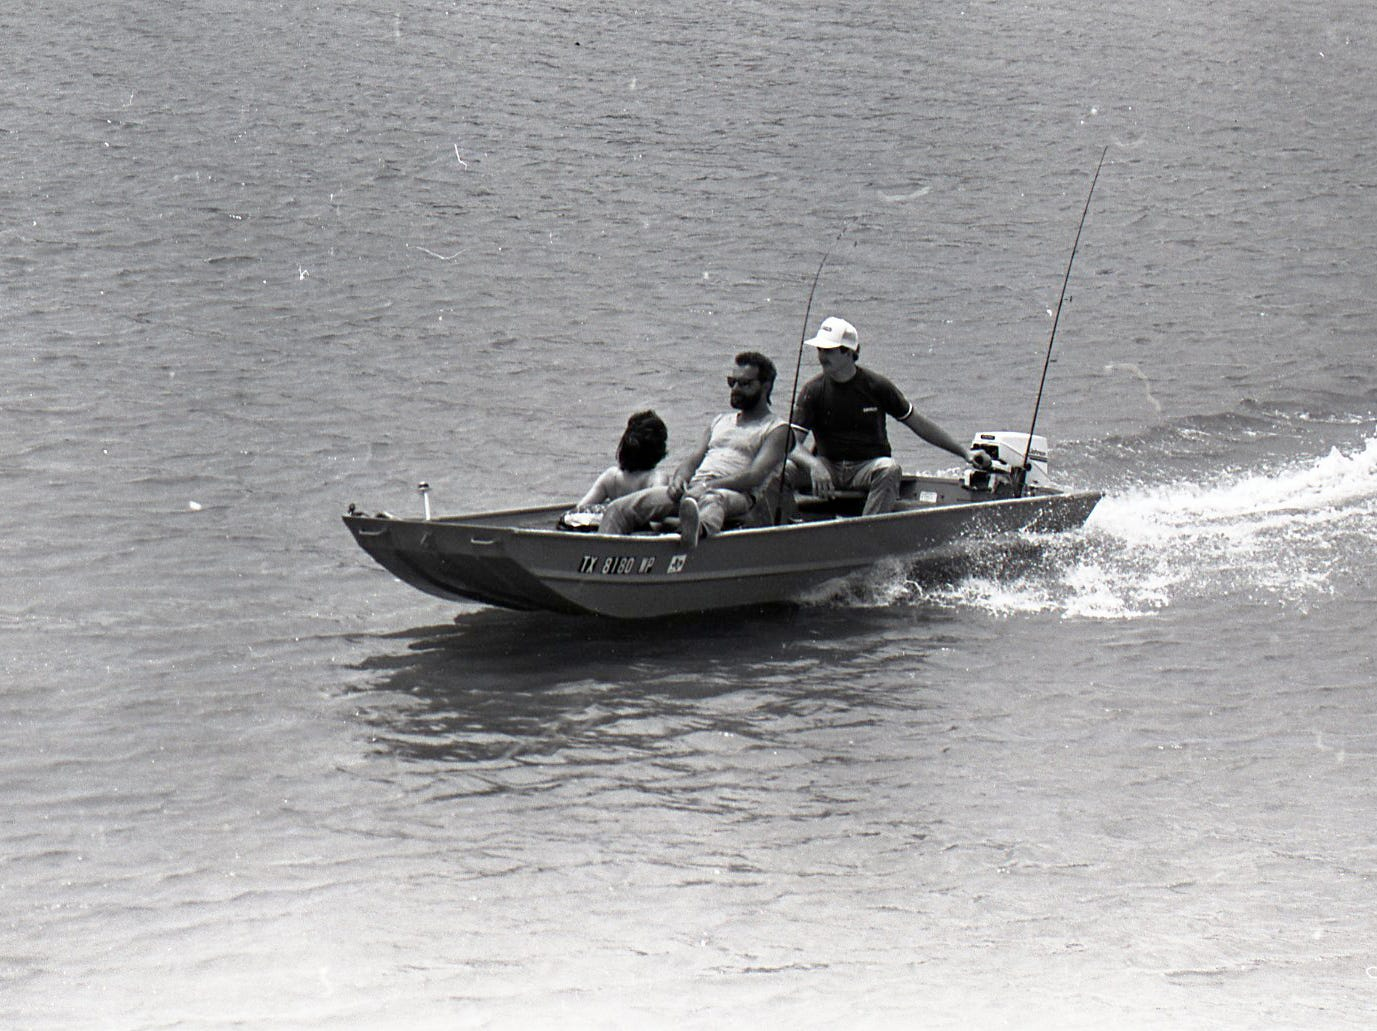 Boaters enjoy the day on the Nueces River at Nueces River Park in Corpus Christi on Easter Sunday, April 19, 1987.